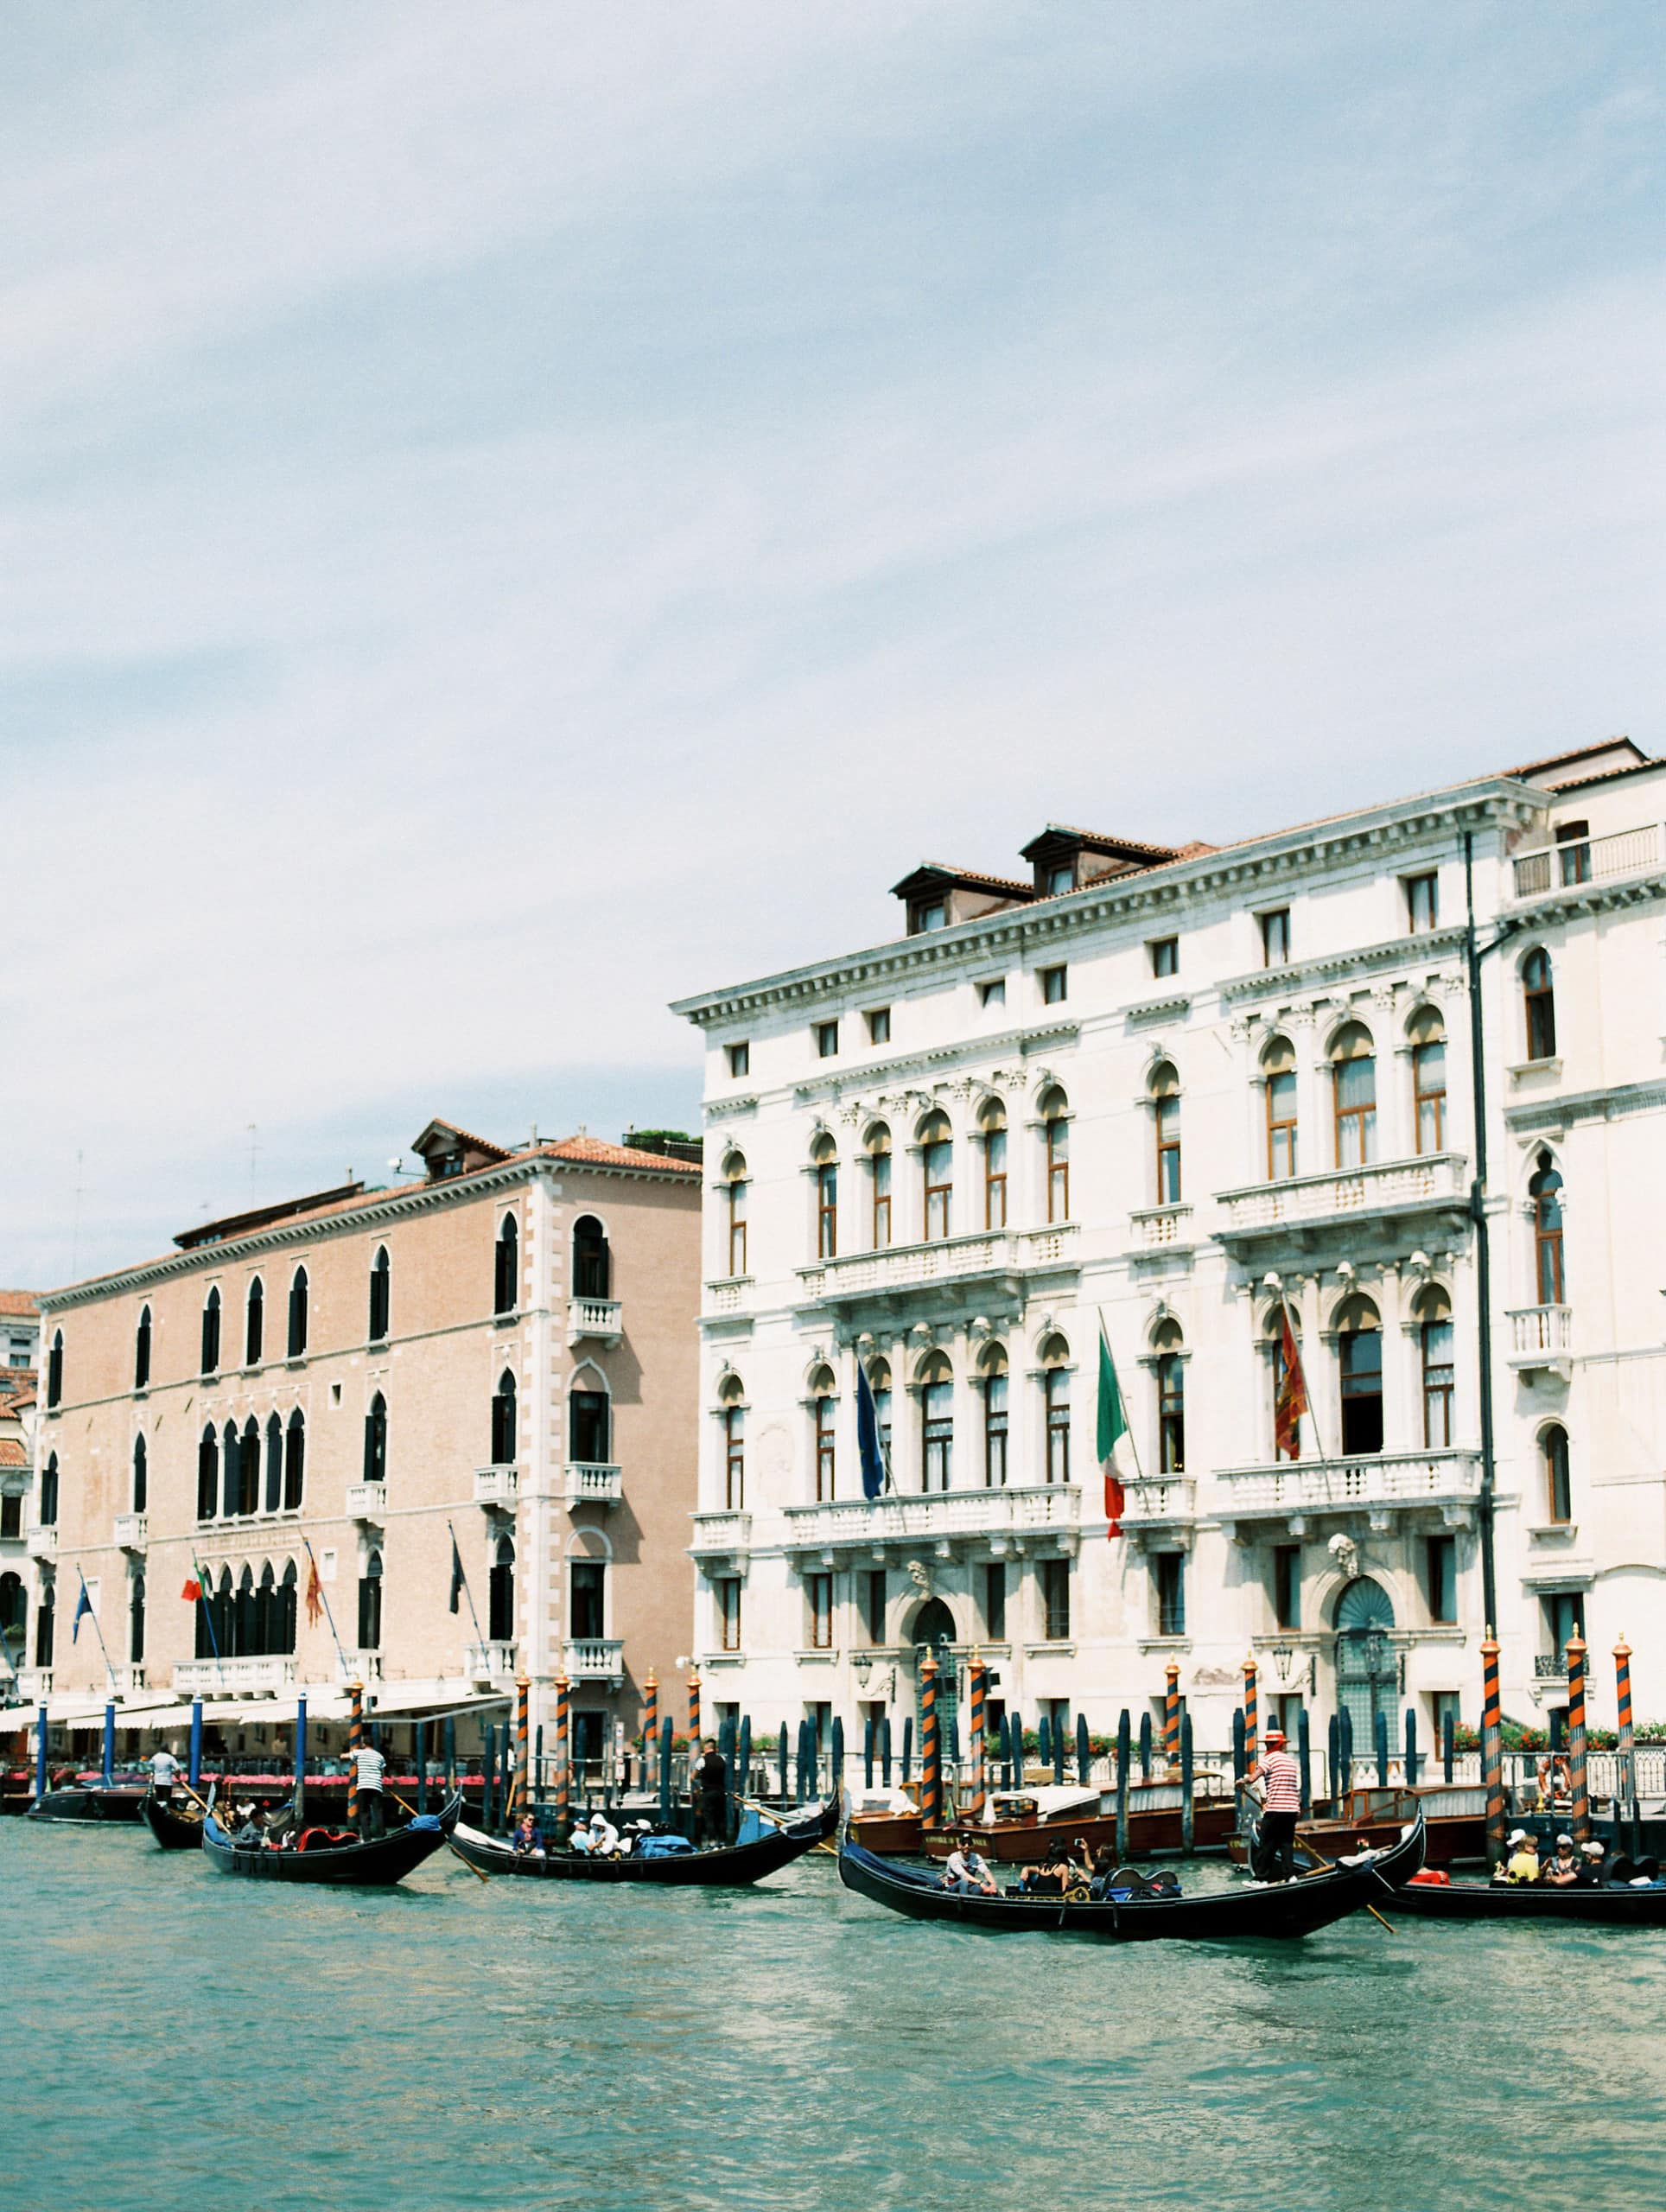 Grand canal venice styled stock photography